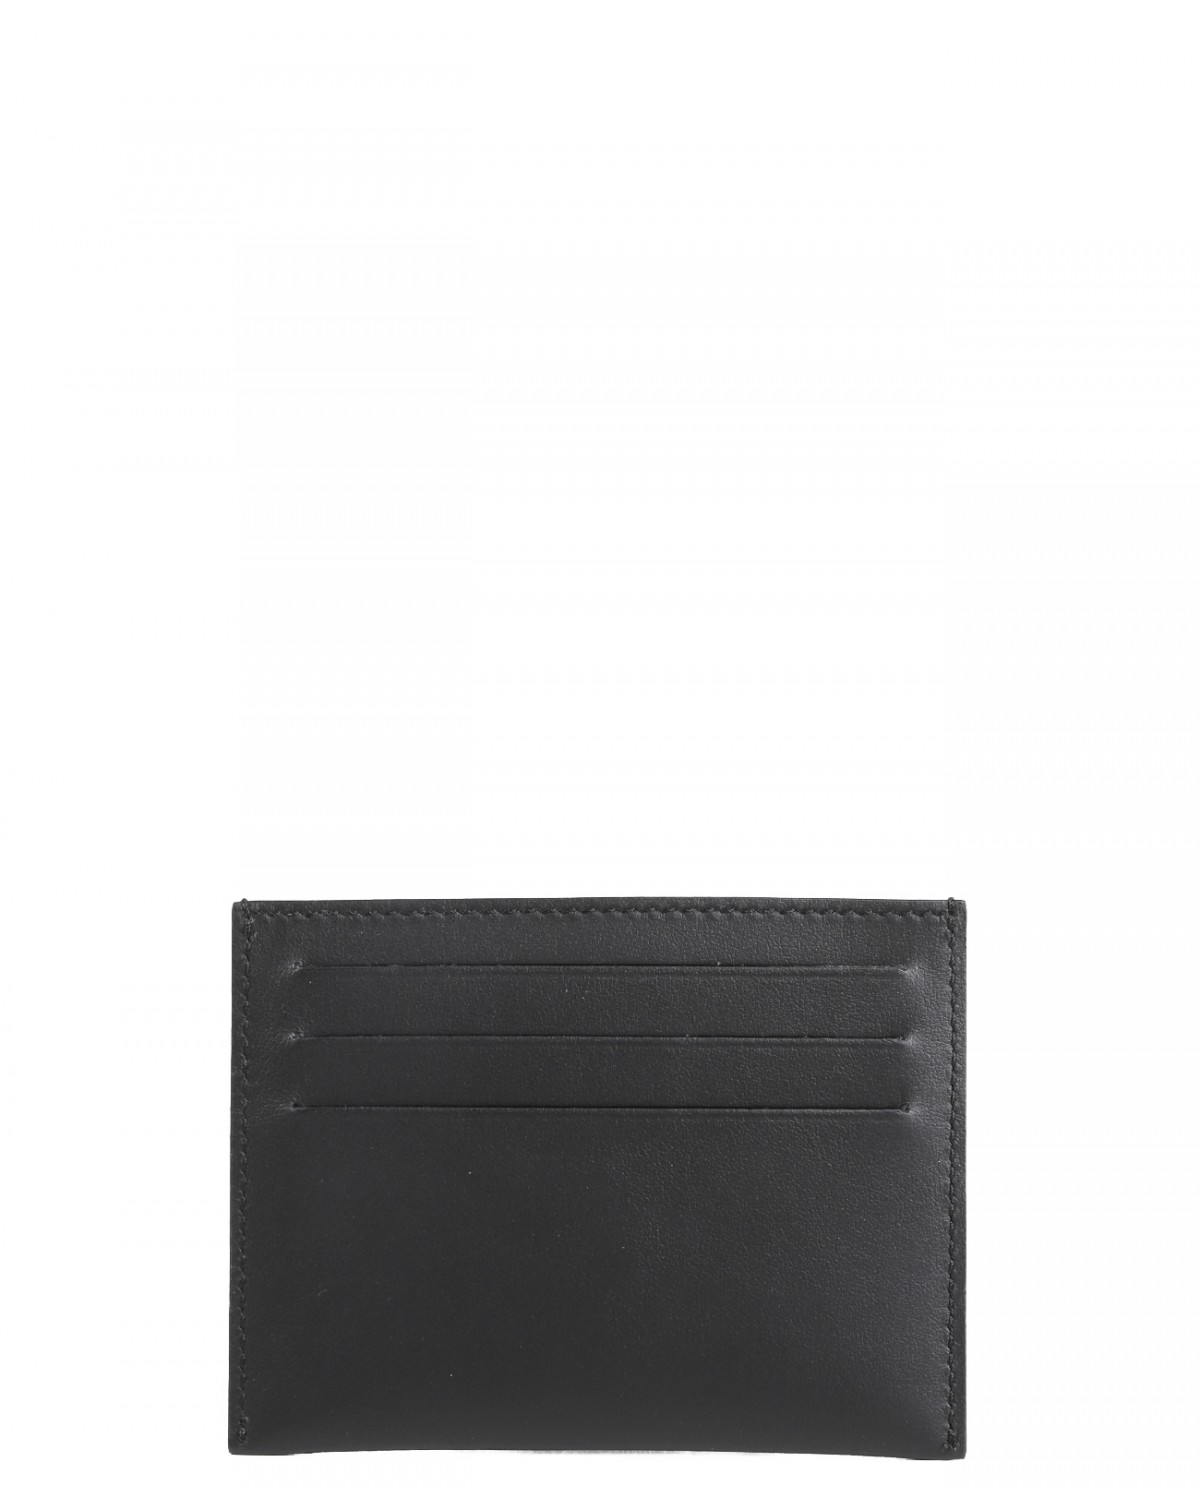 TOM FORD CAMOUFLAGE CARD HOLDER